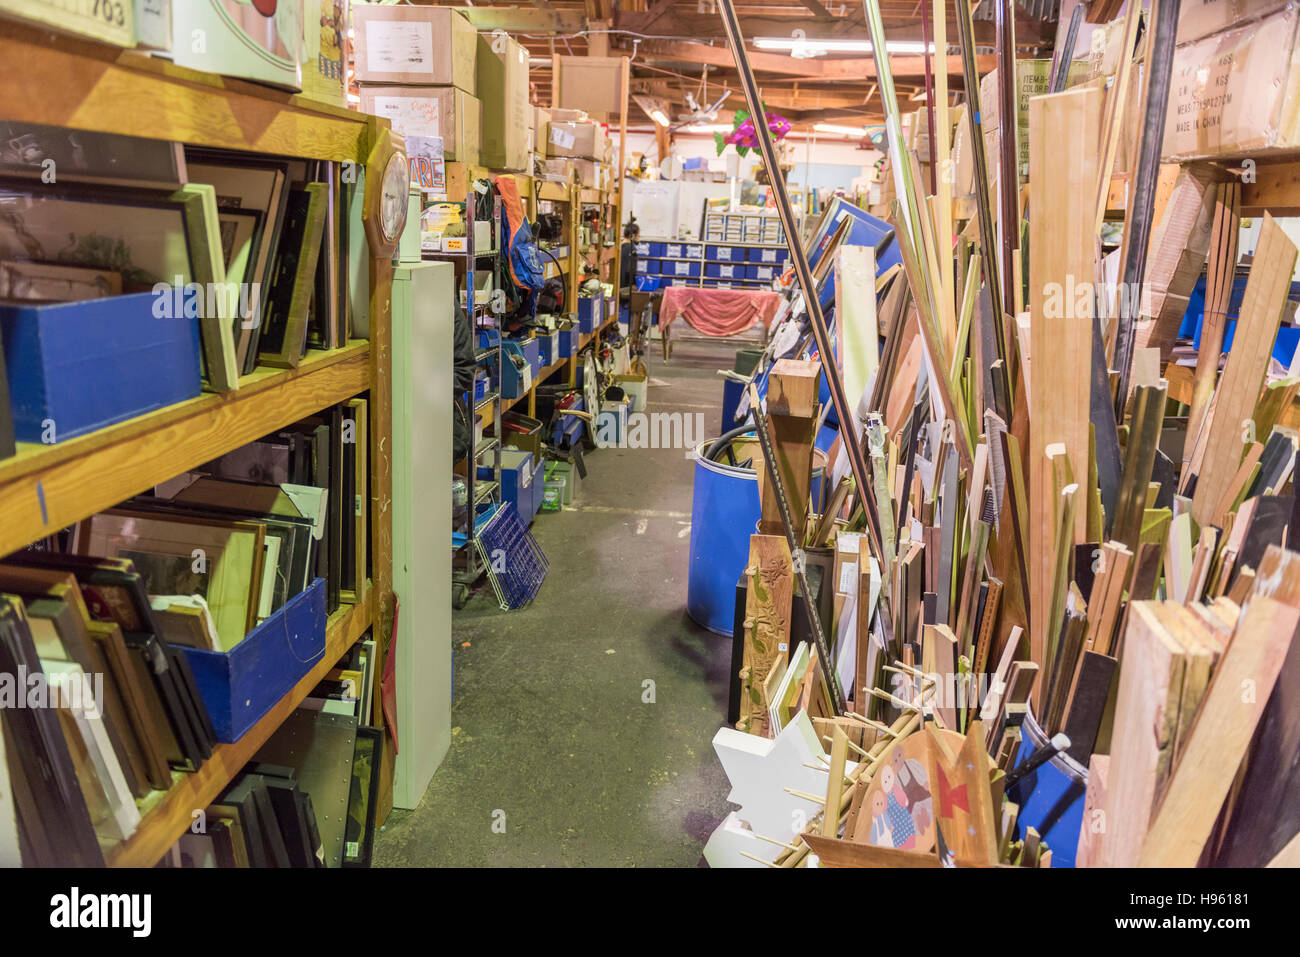 Interior view of Scrap, a creative re-cycling public warehouse for useful materials to reuse in creative projects, - Stock Image